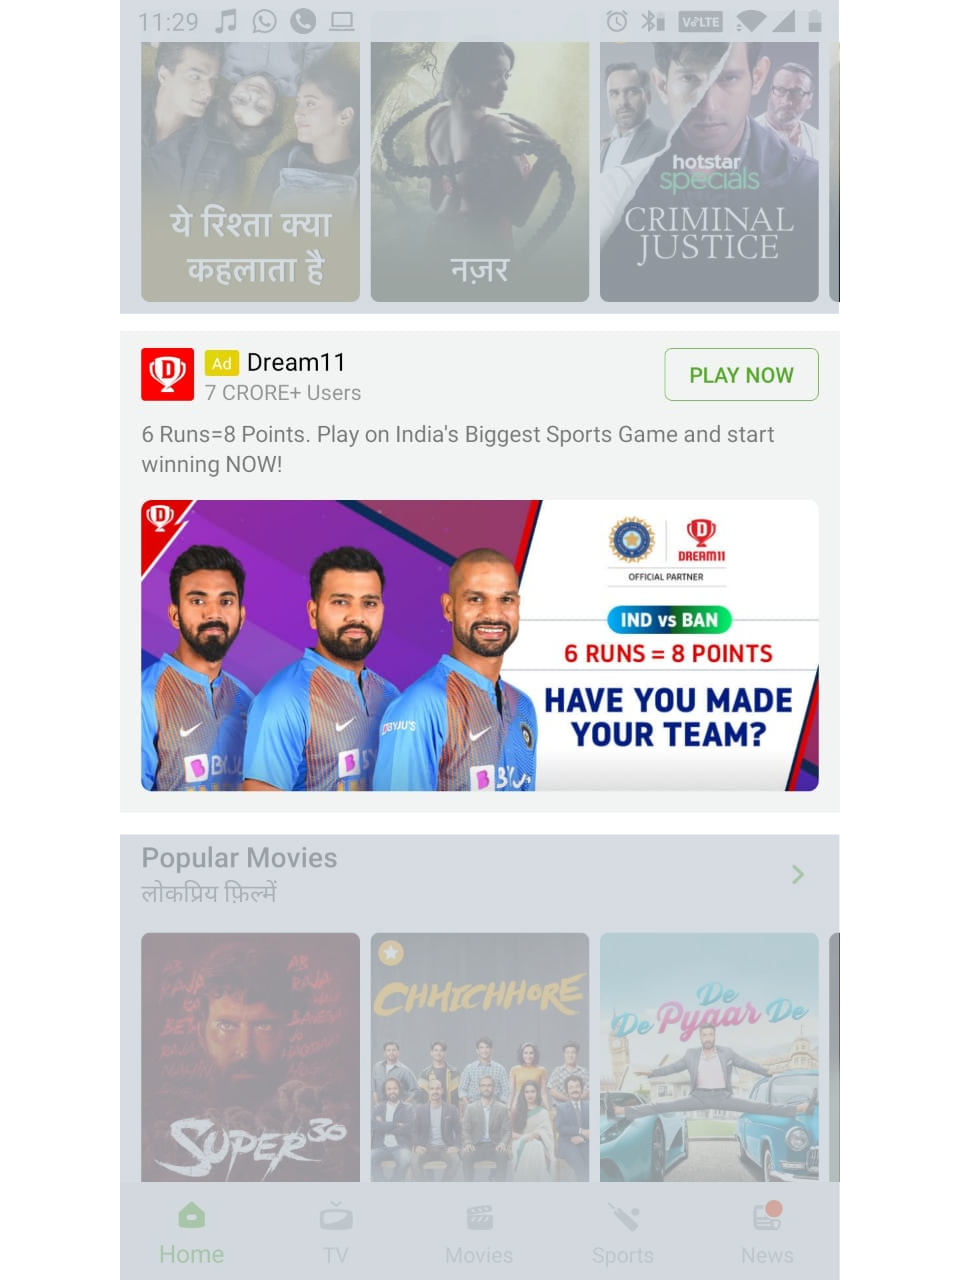 Hotstar advertising for event promotion